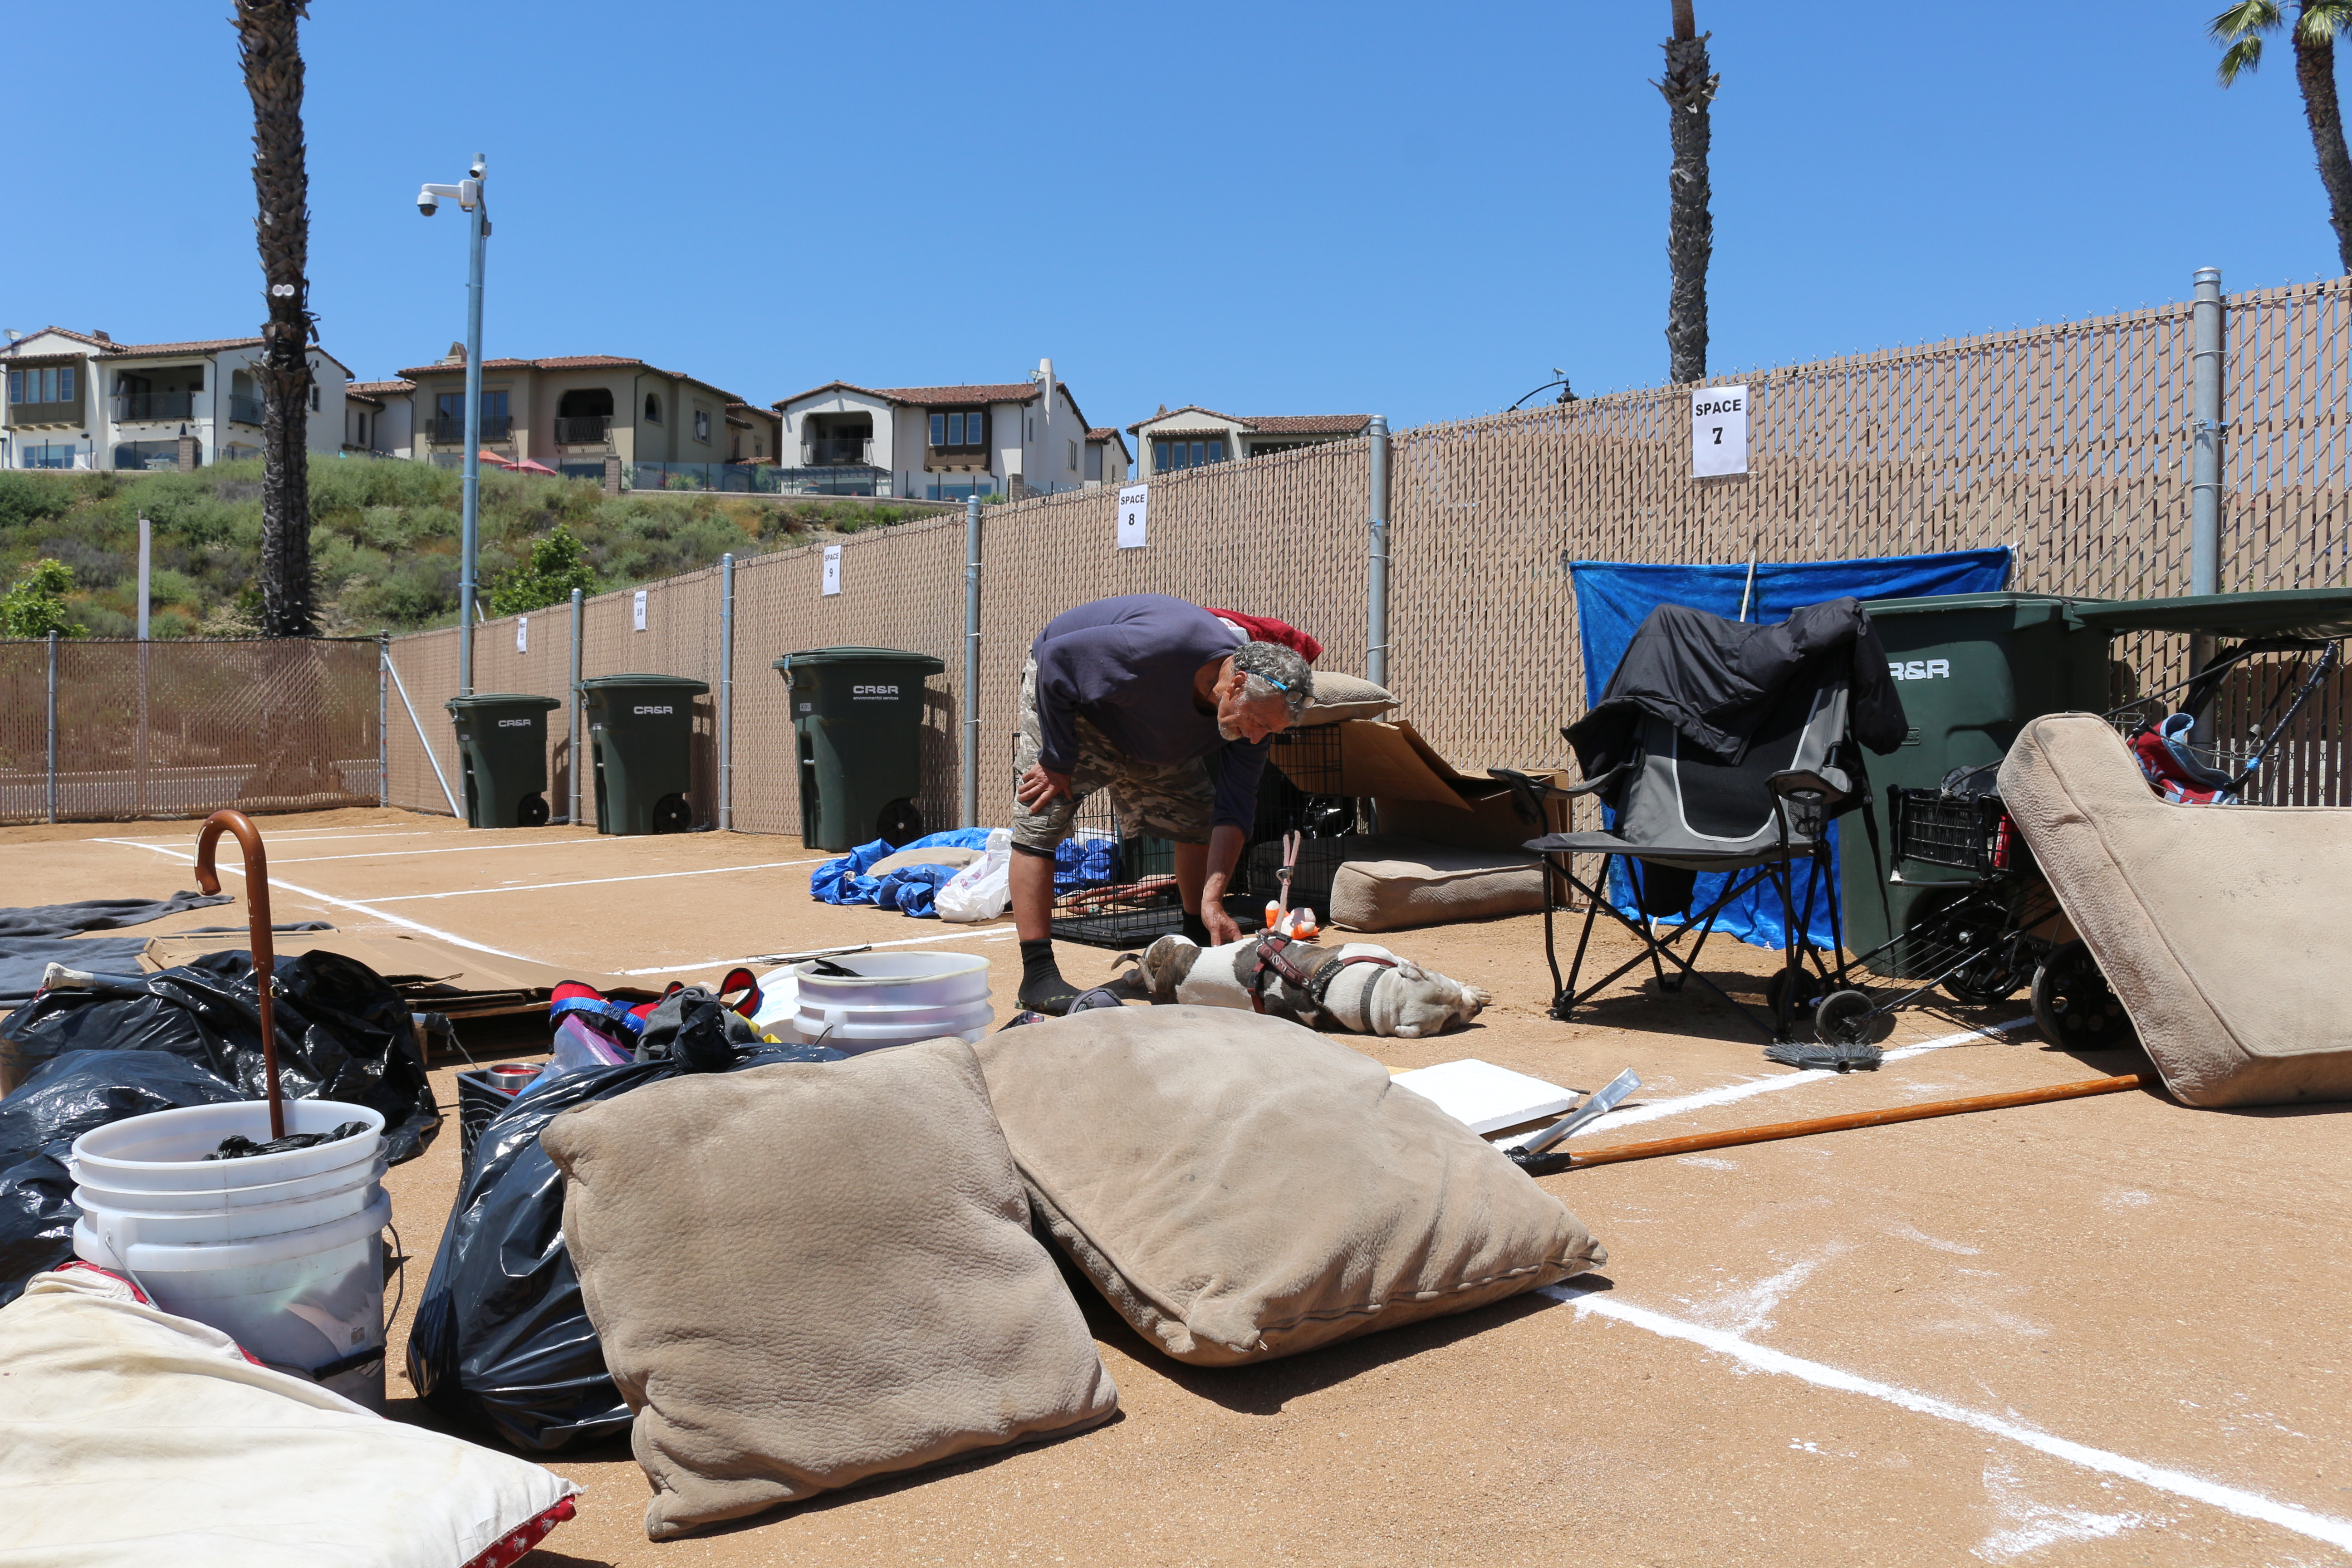 Steven Gustafson, 63, is one of the first to arrive at the city's designated lot for the homeless on Avenida Pico. Having just moved out of the North Beach parking lot, he works on setting up his campsite. Photo: Chelsie Rex